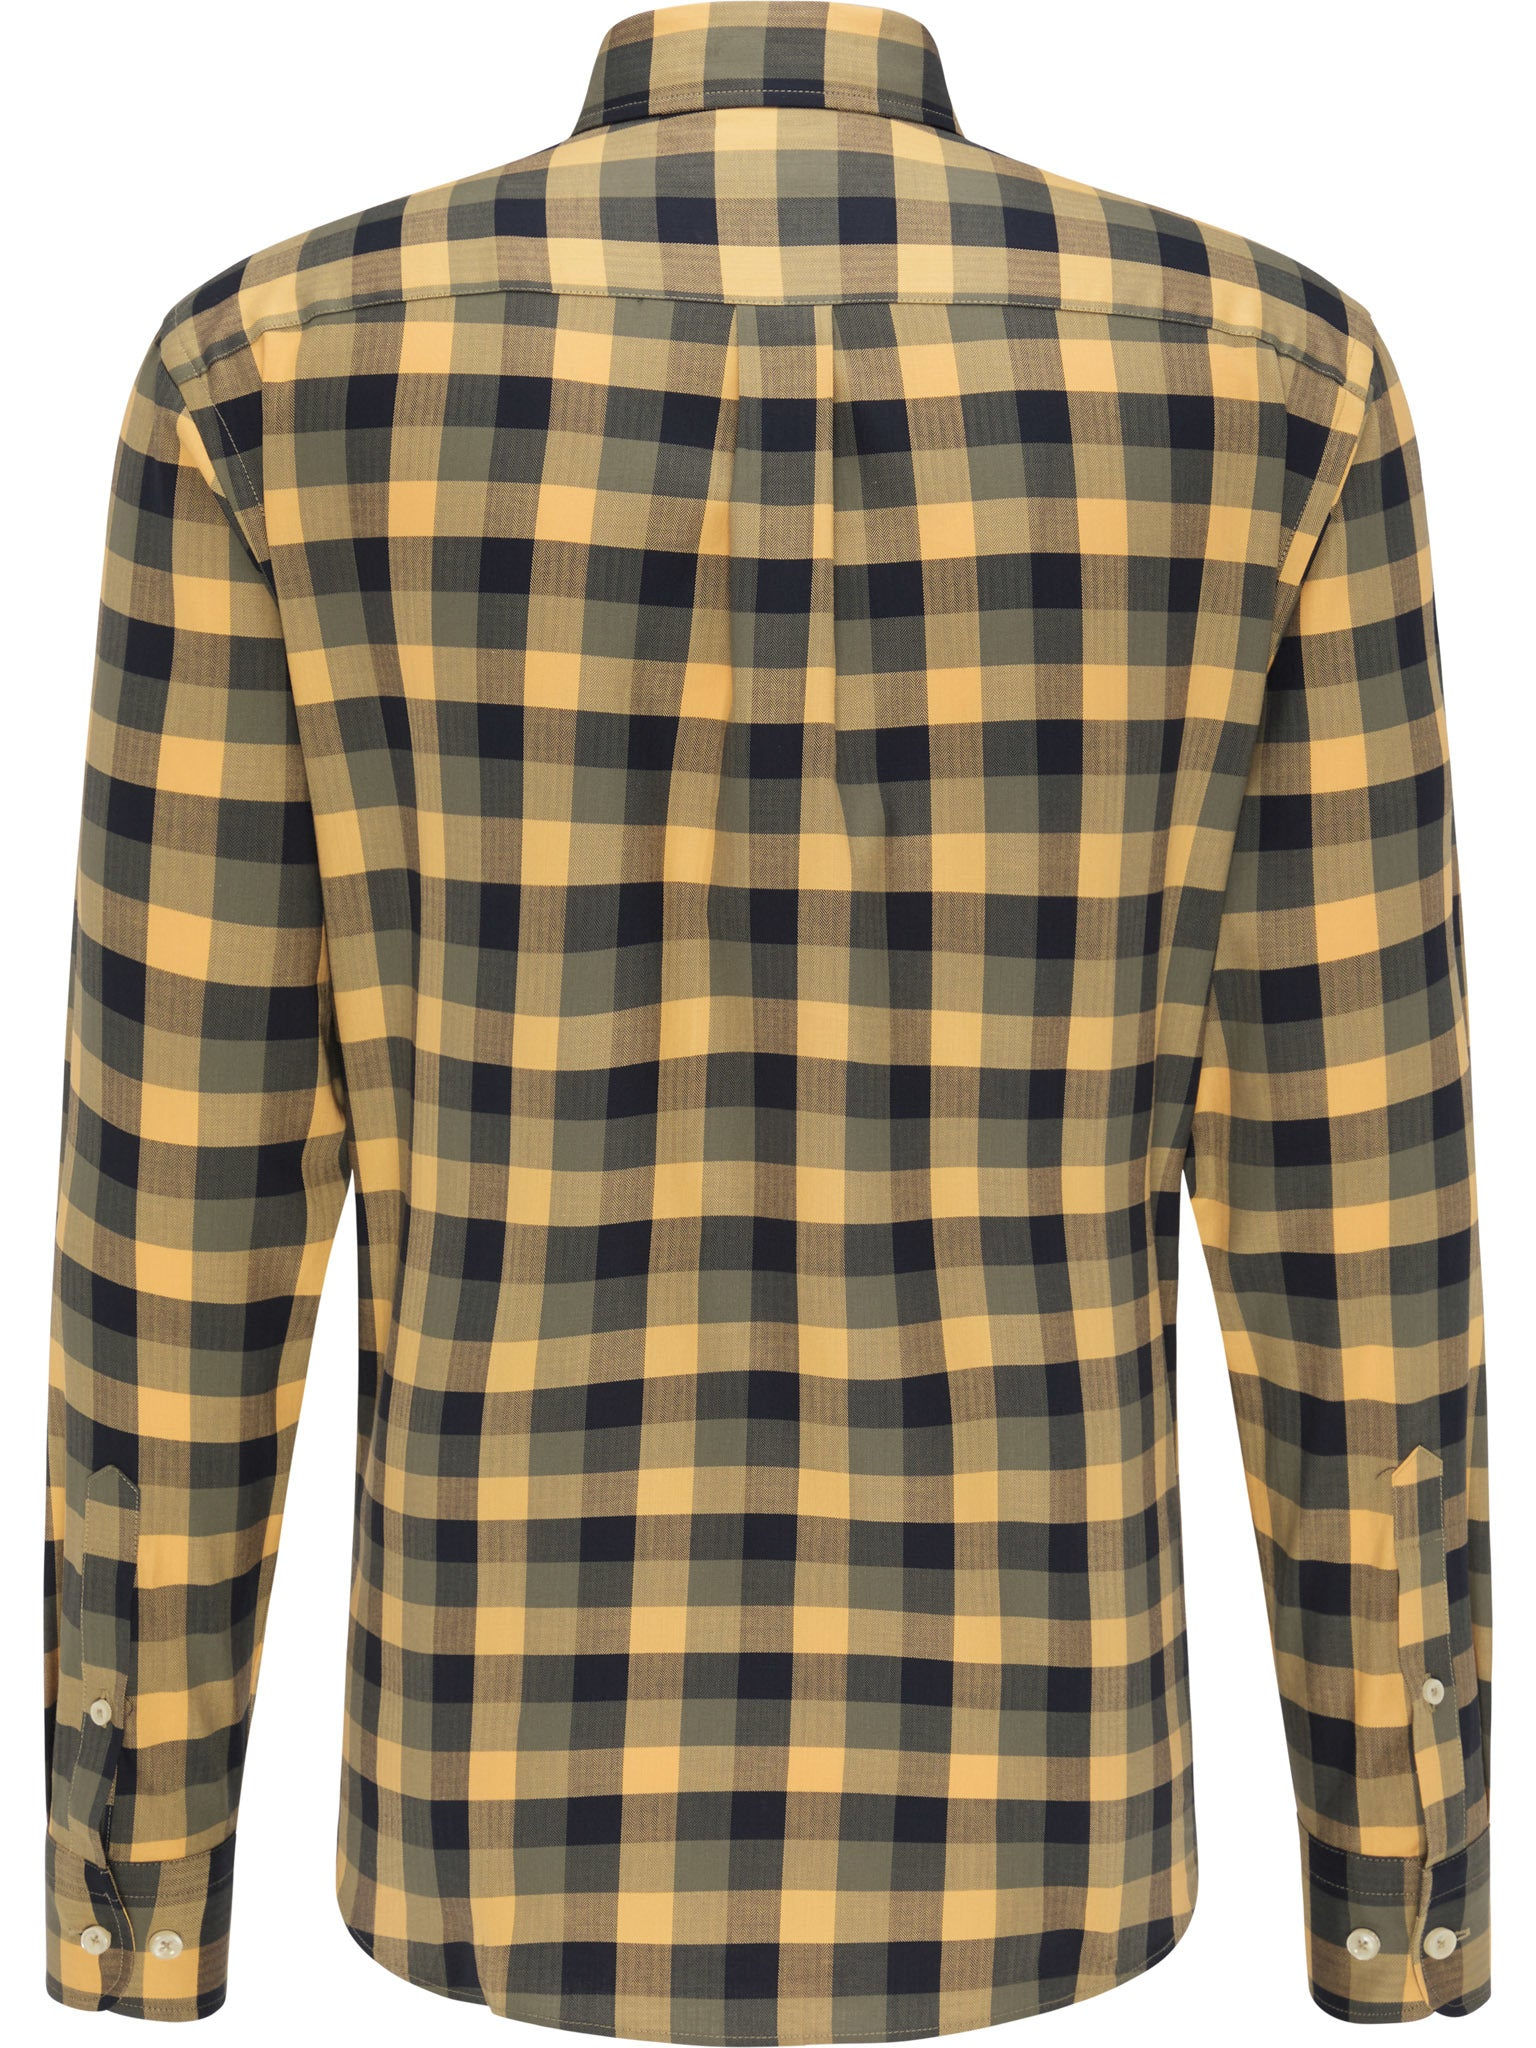 Fynch Hatton Flannel Fond Check Shirt for Men in Mustard Check